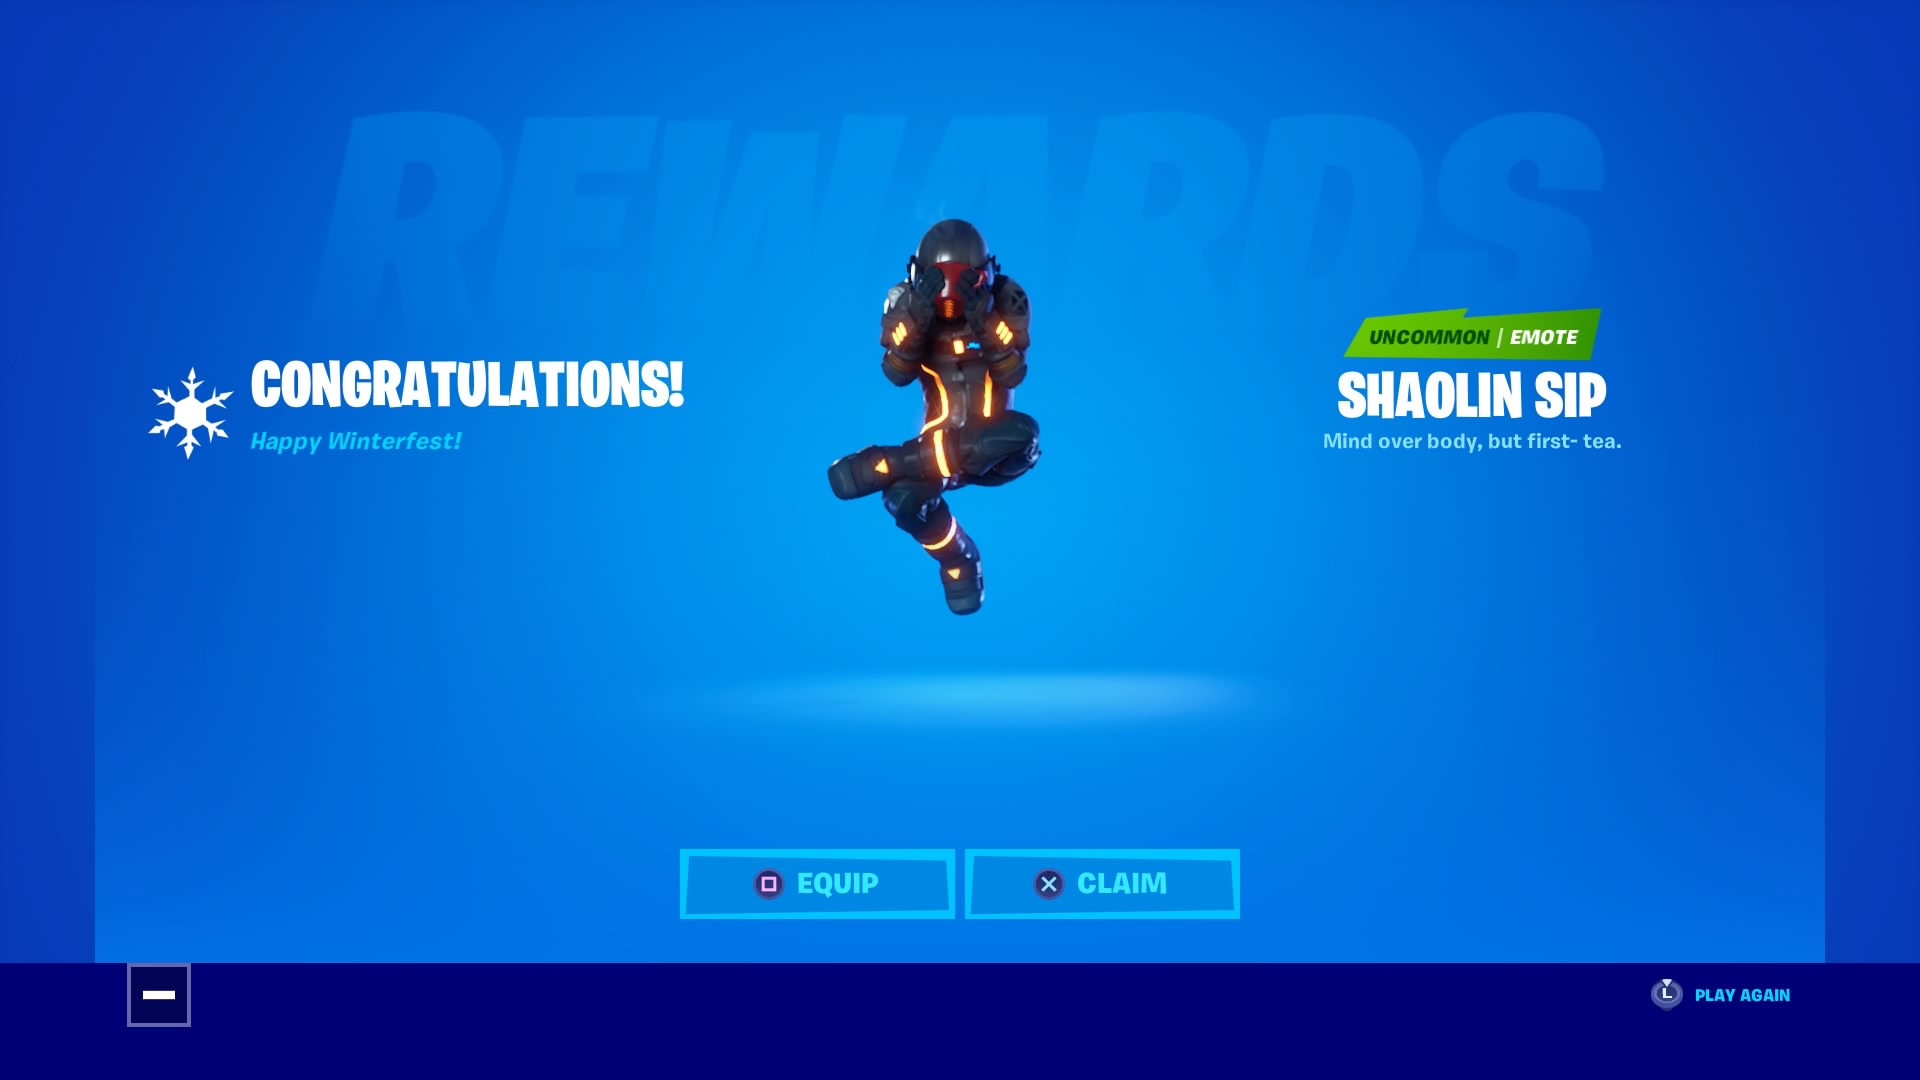 fortnite shaolin sip wallpaper 69911